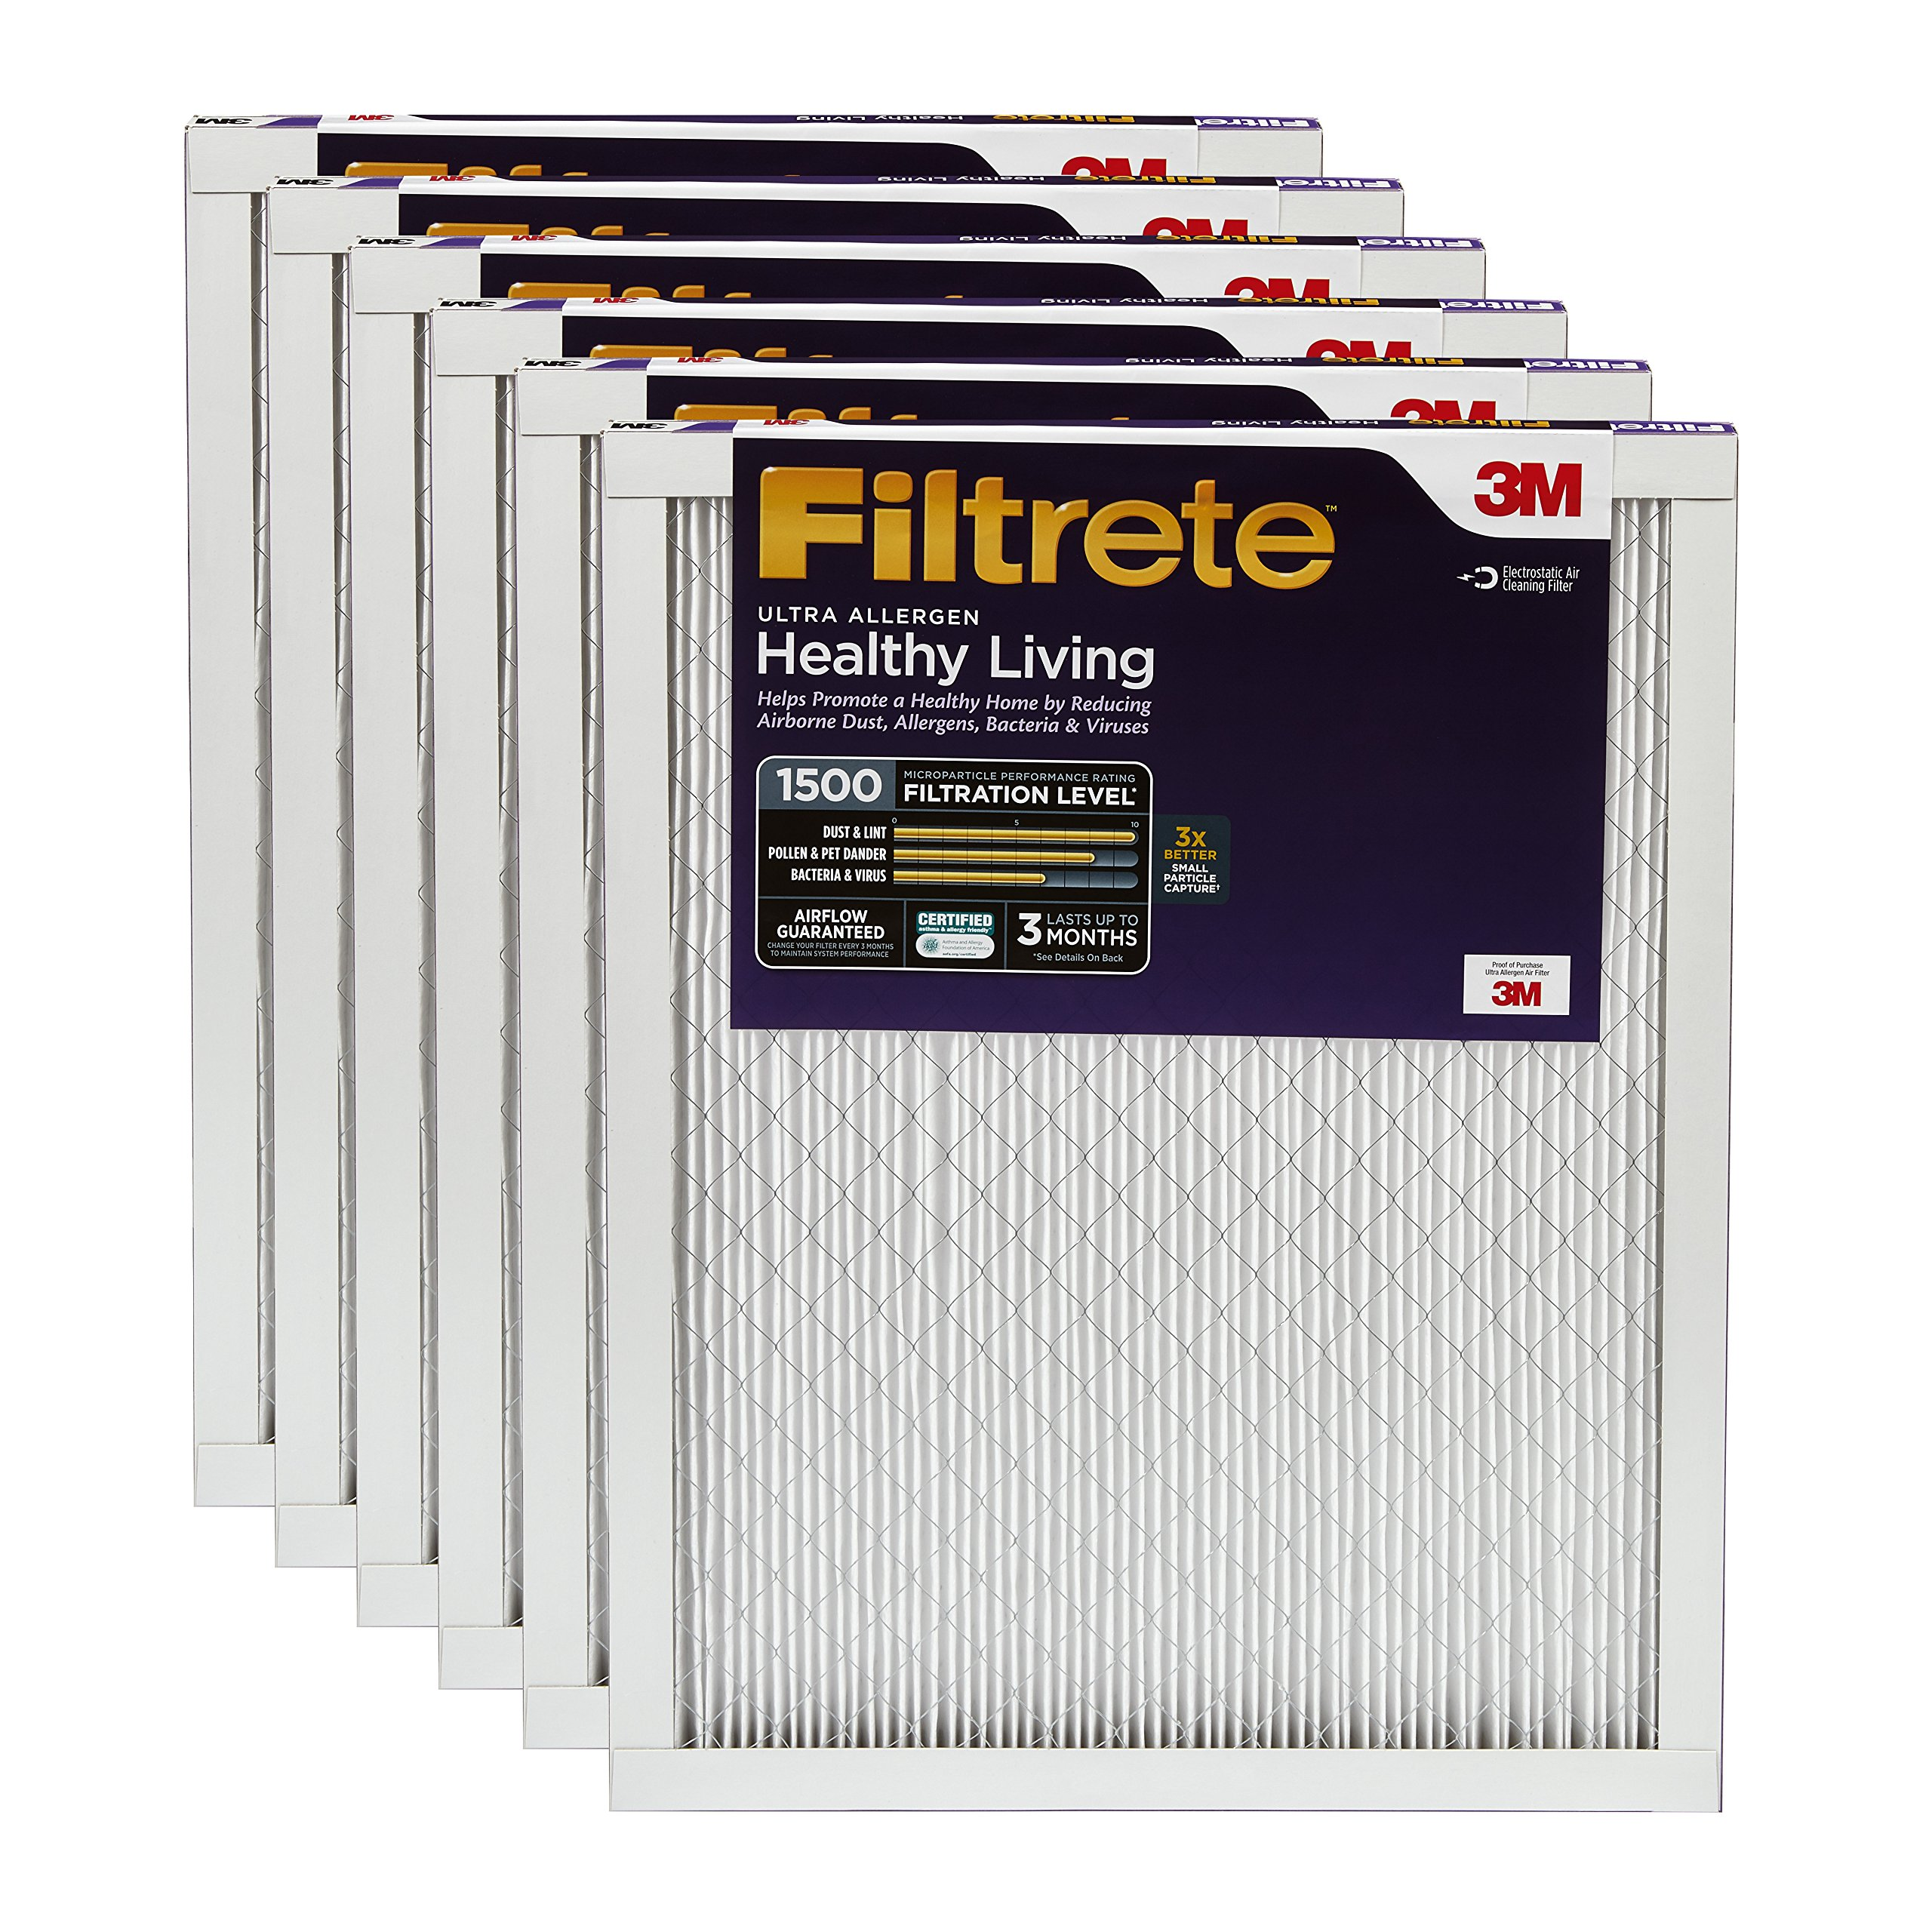 Filtrete MPR 1500 16 x 25 x 1 Healthy Living Ultra Allergen Reduction HVAC Air Filter, 6-Pack